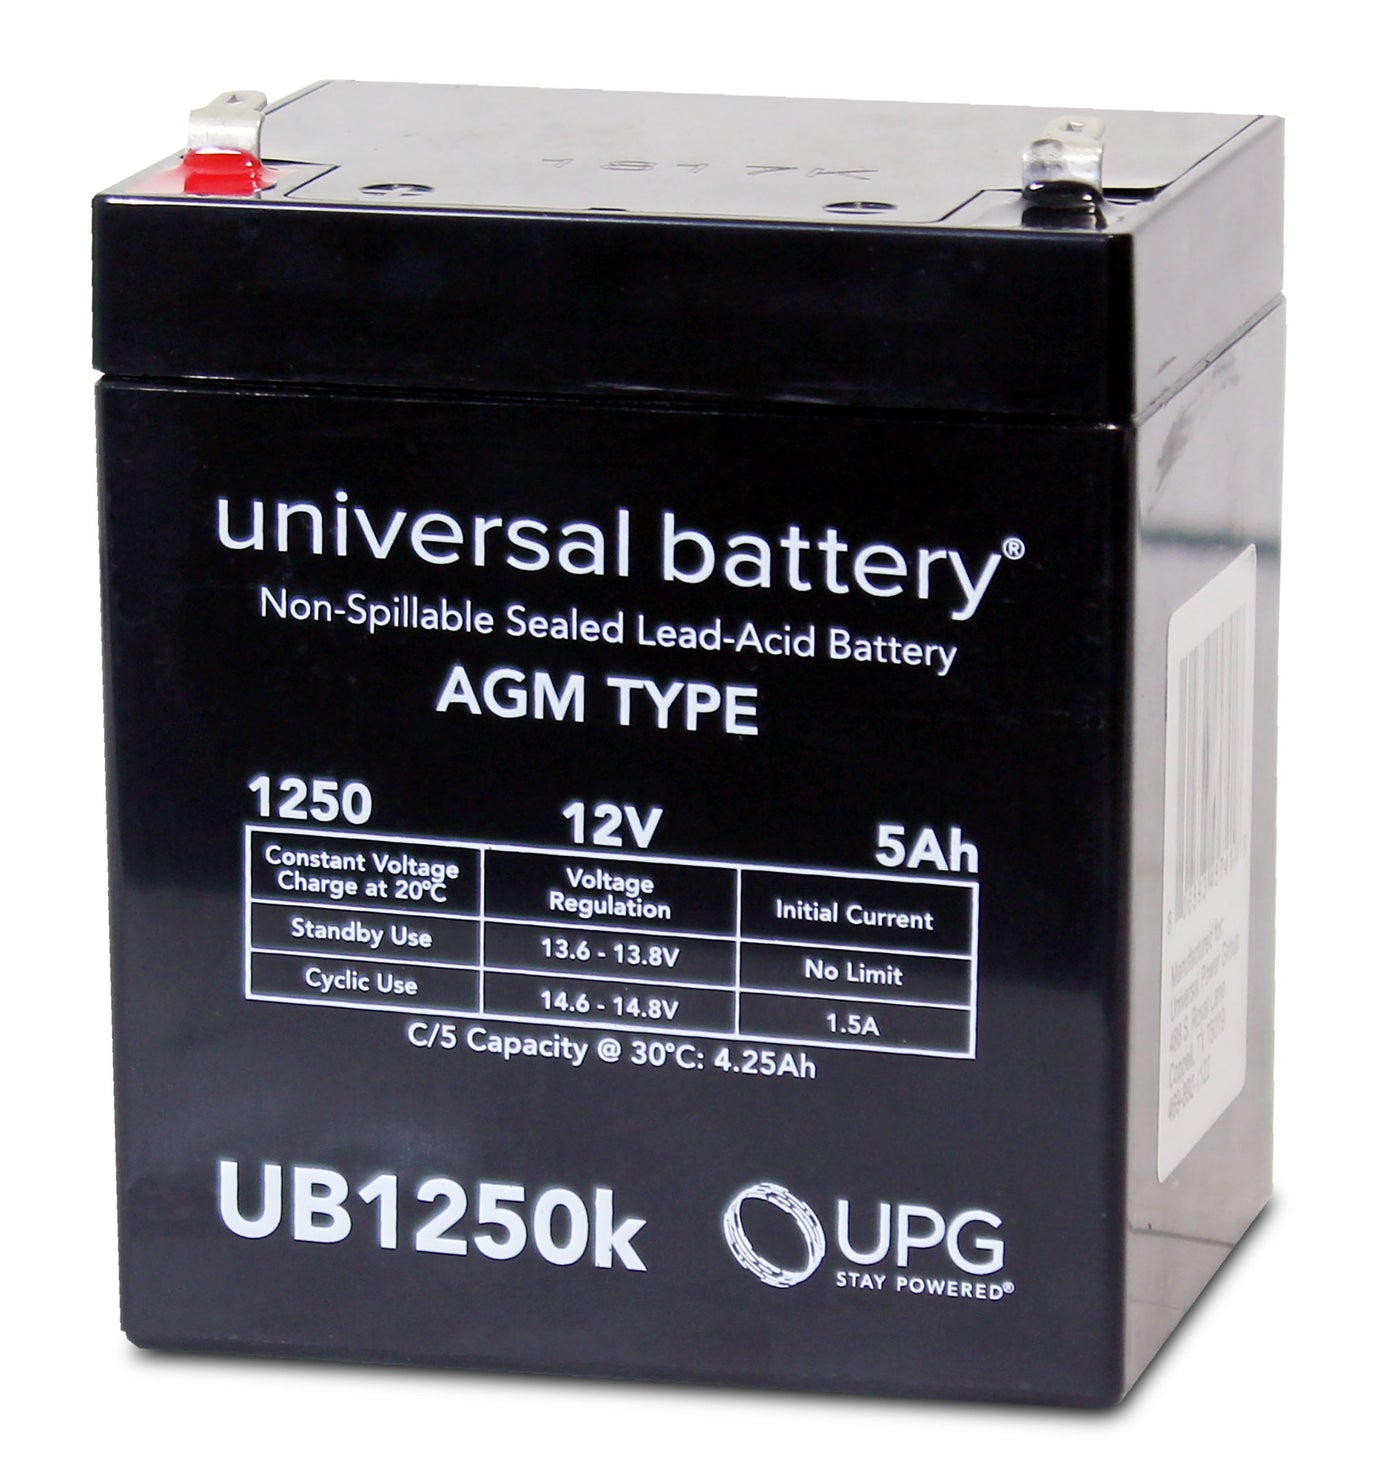 12v 5ah Battery >> Sealed Lead Acid Batteries Amg Ub1250 Sla Battery 12v 5ah Terminal F1 D5741